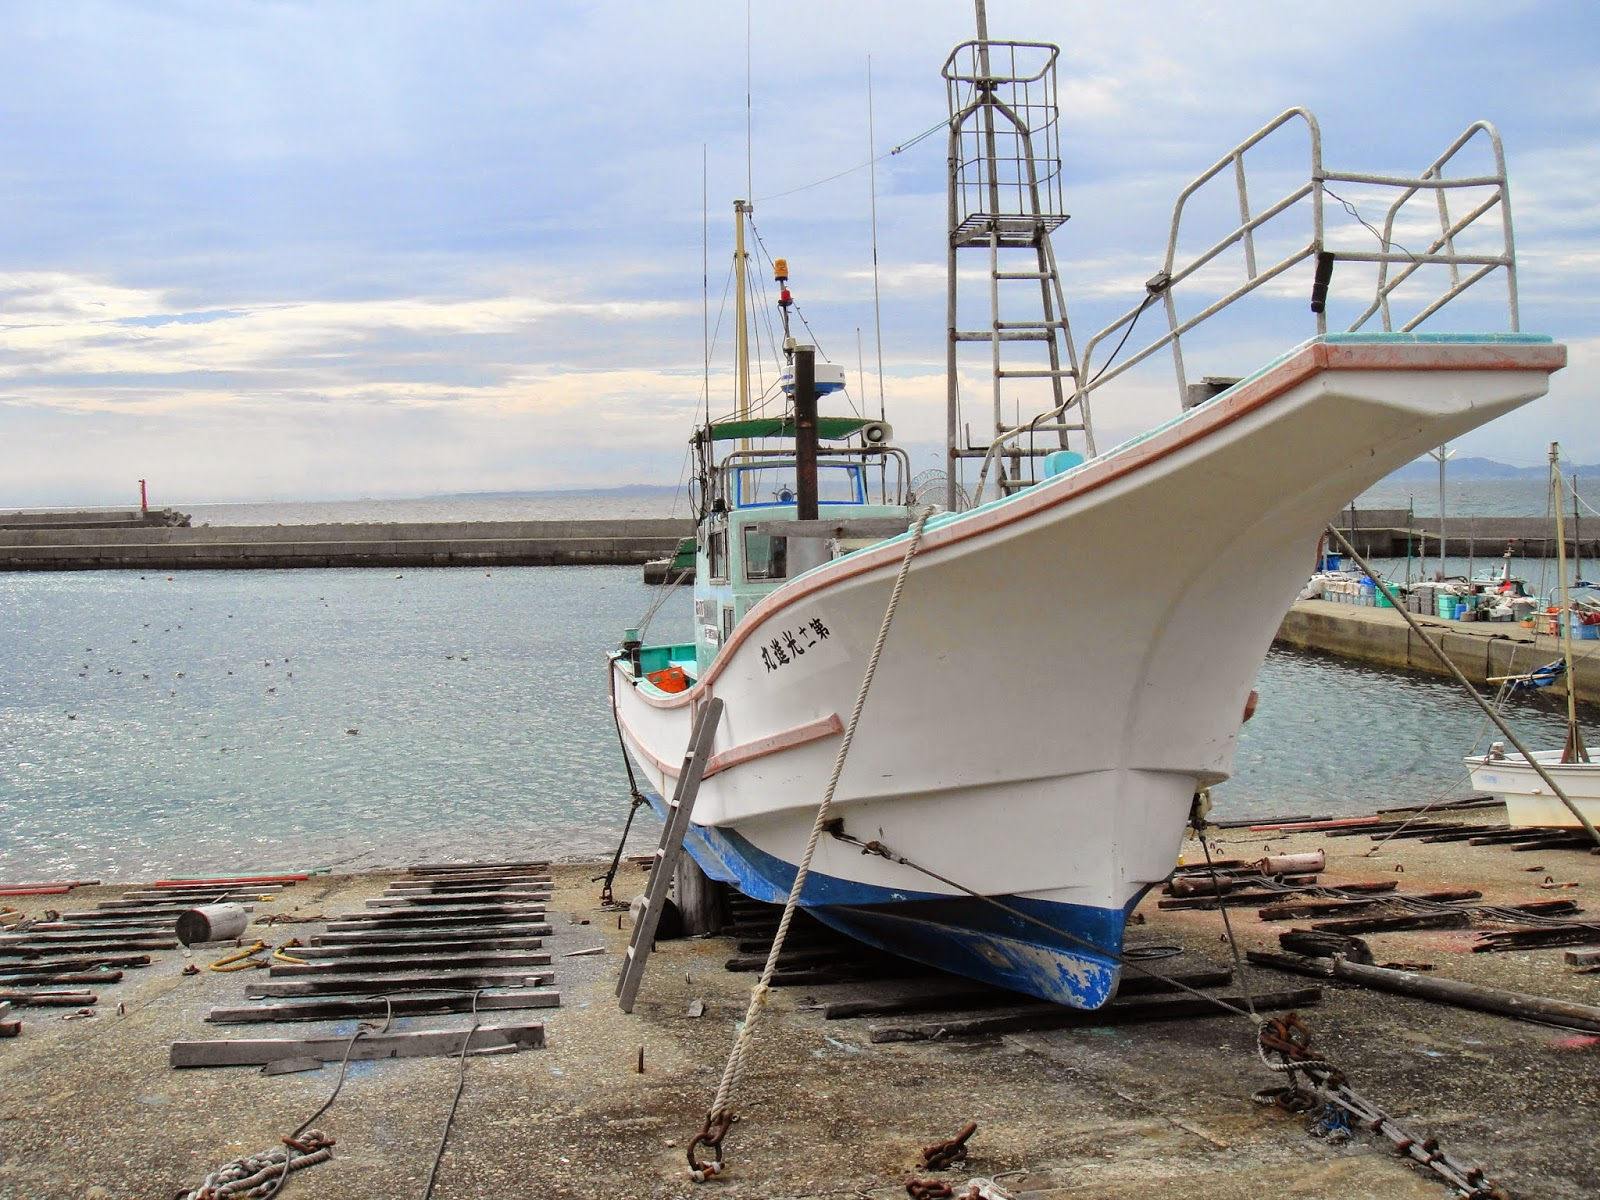 A small fishing boat in a fishing village